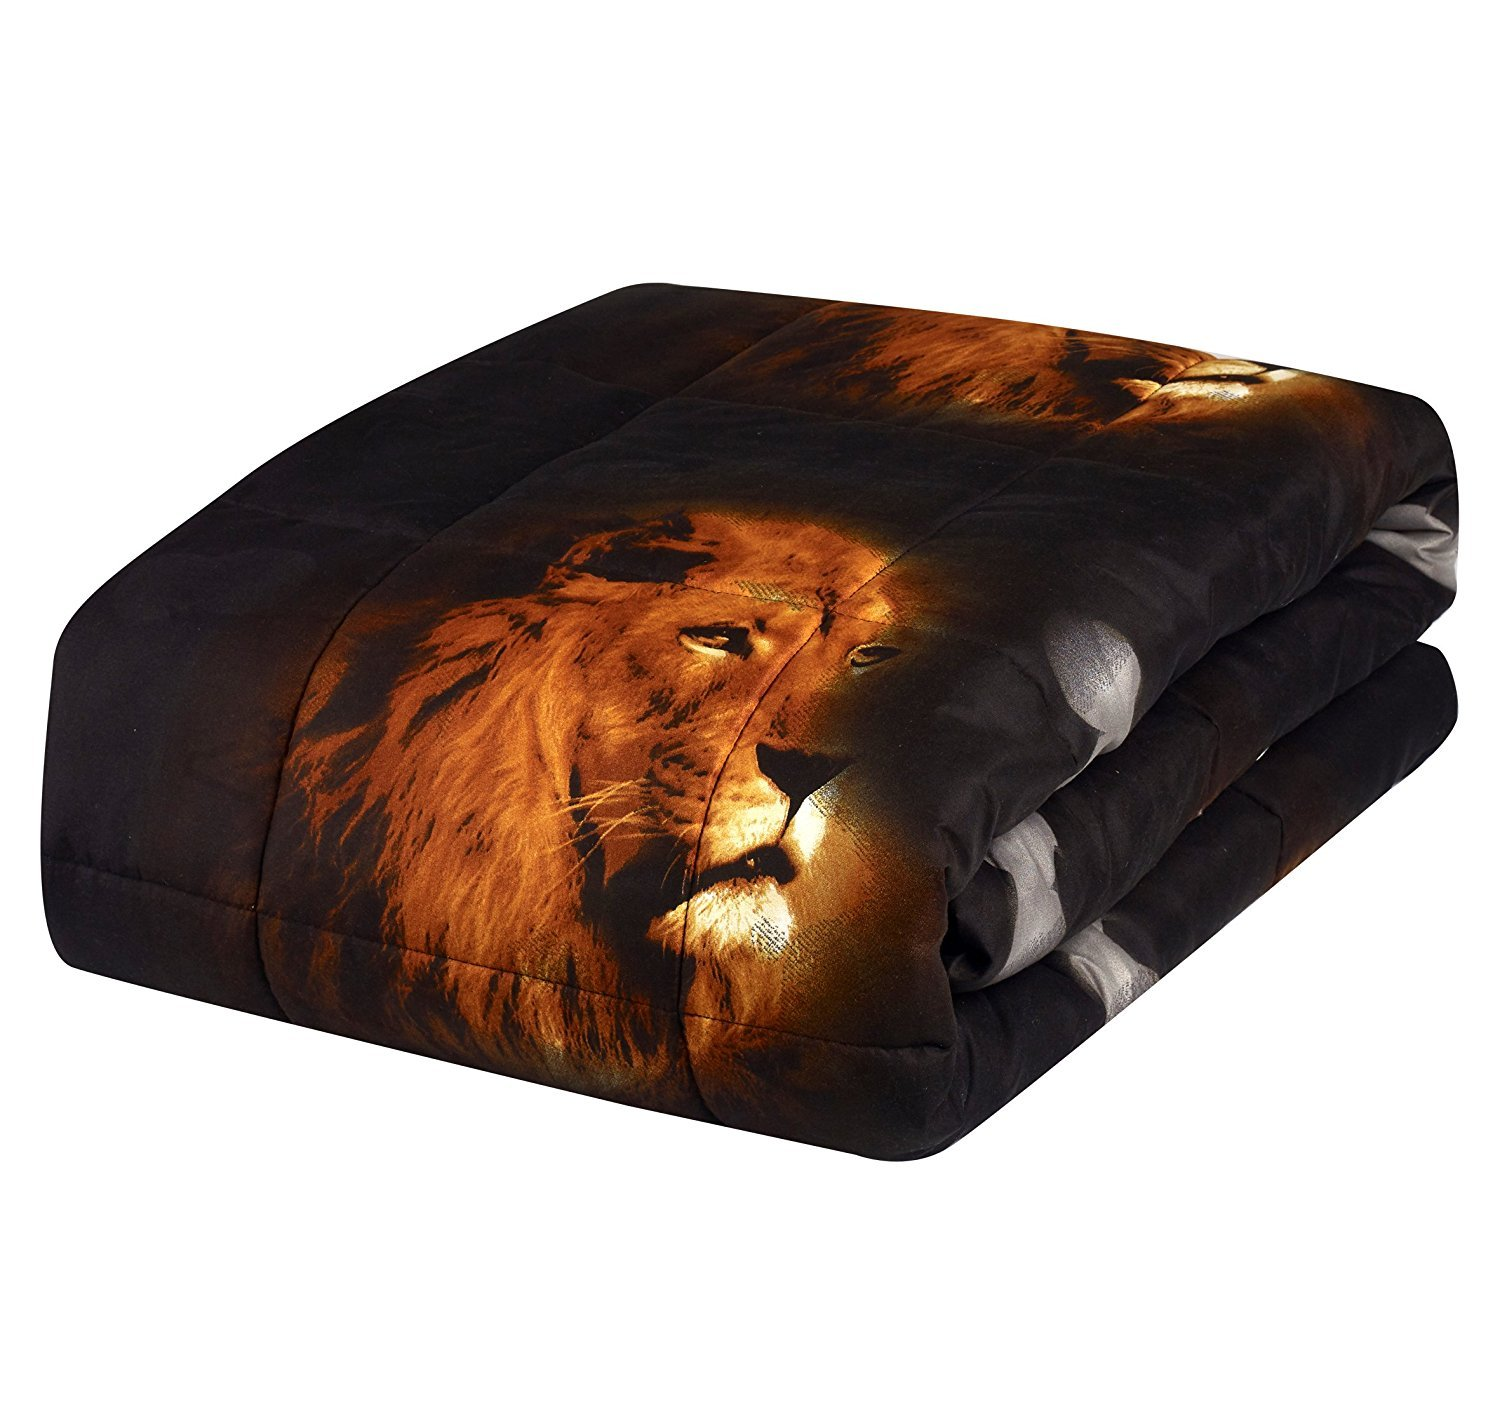 HUAJIE 2 Piece Set Beautiful Soft 3d Print Vivid Animals Pattern Box Stitched Comforter Set (1 Comforter,1 Pillowcase) (Twin, Tiger Lion) by HUAJIE (Image #7)